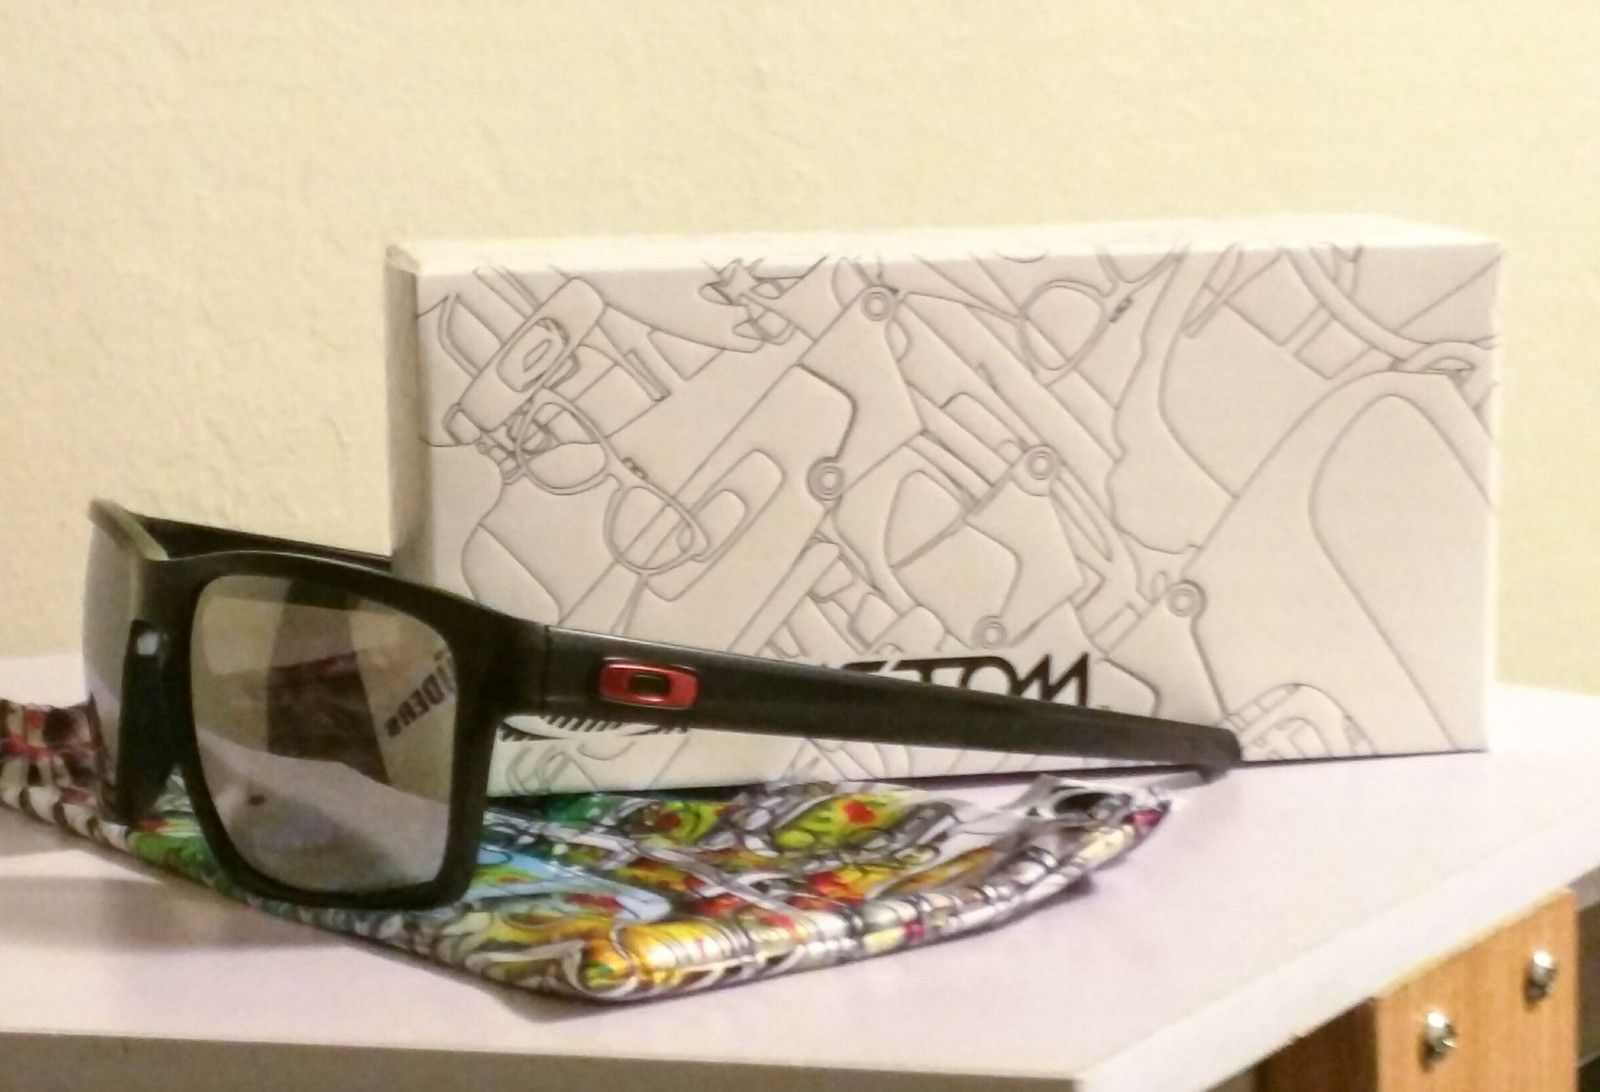 Delivery time for First Custom Sunglasses from Oakley? - uploadfromtaptalk1450235789403.jpg